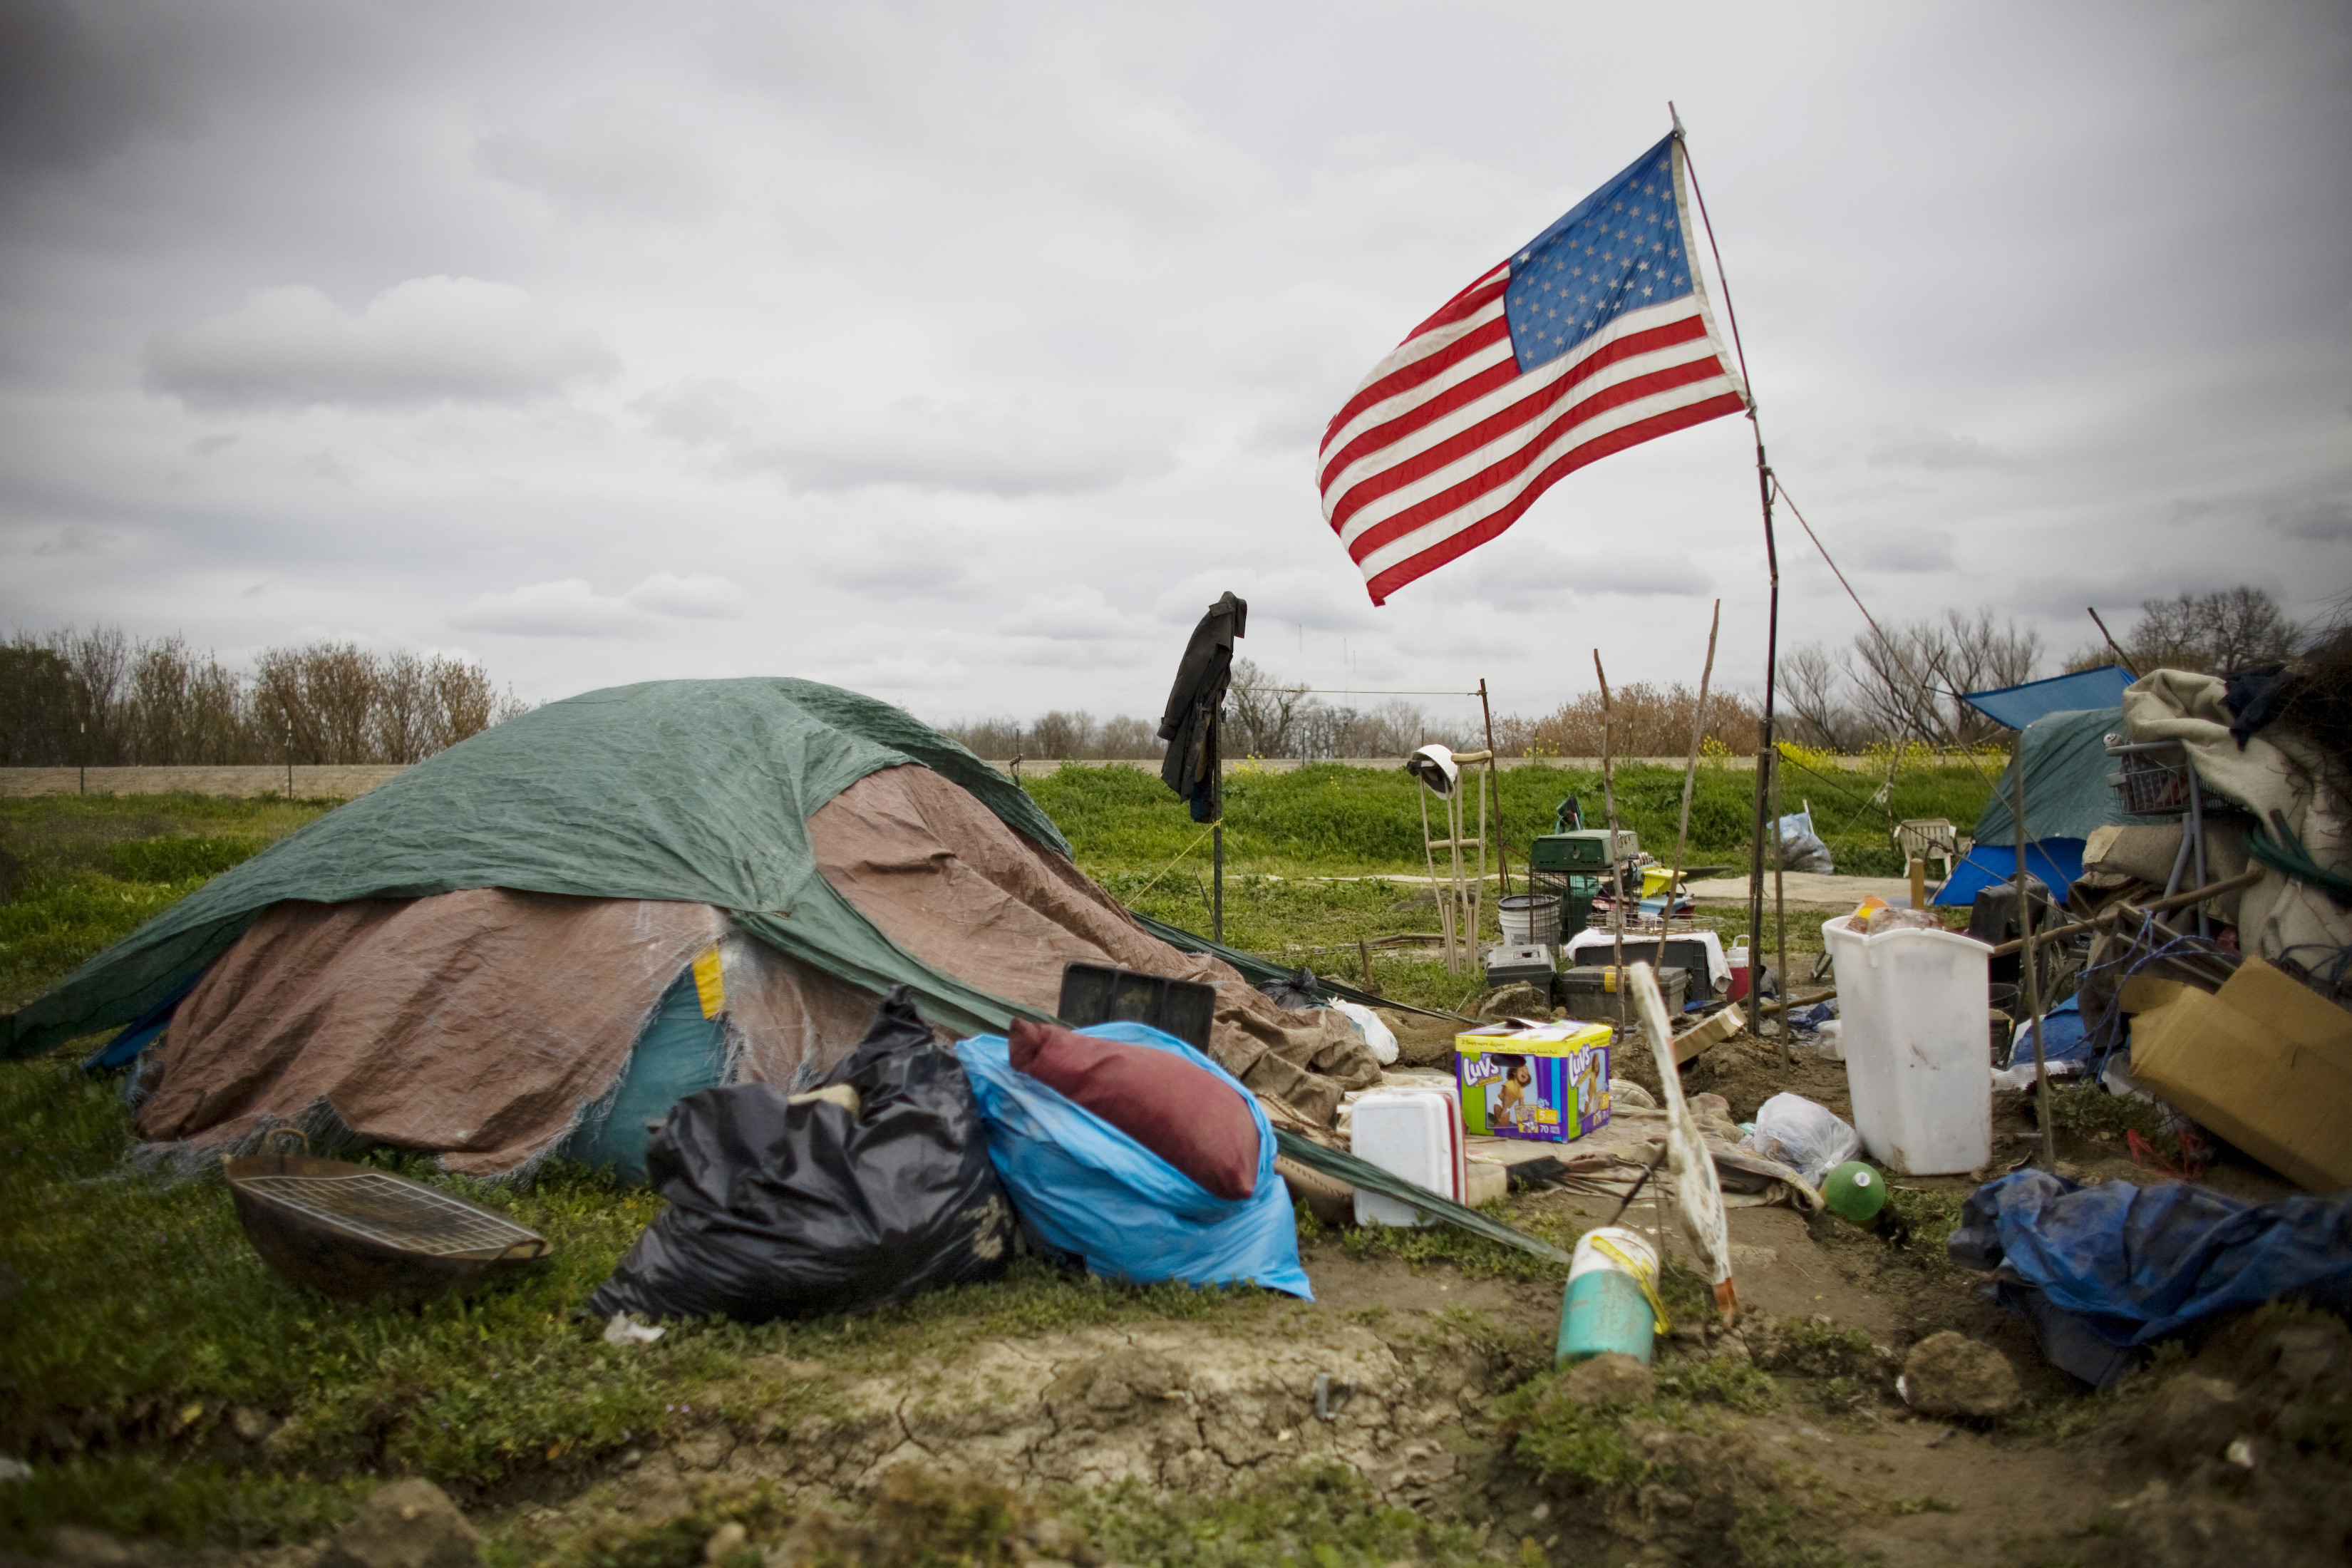 A campsite at a homeless tent city in Sacramento California March 15, 2009. Sacramento's tent city has seen an increase in population as unemployment numbers grow in the US. REUTERS/ Max Whittaker  (UNITED STATES SOCIETY BUSINESS) - GF2E53H1GHI01